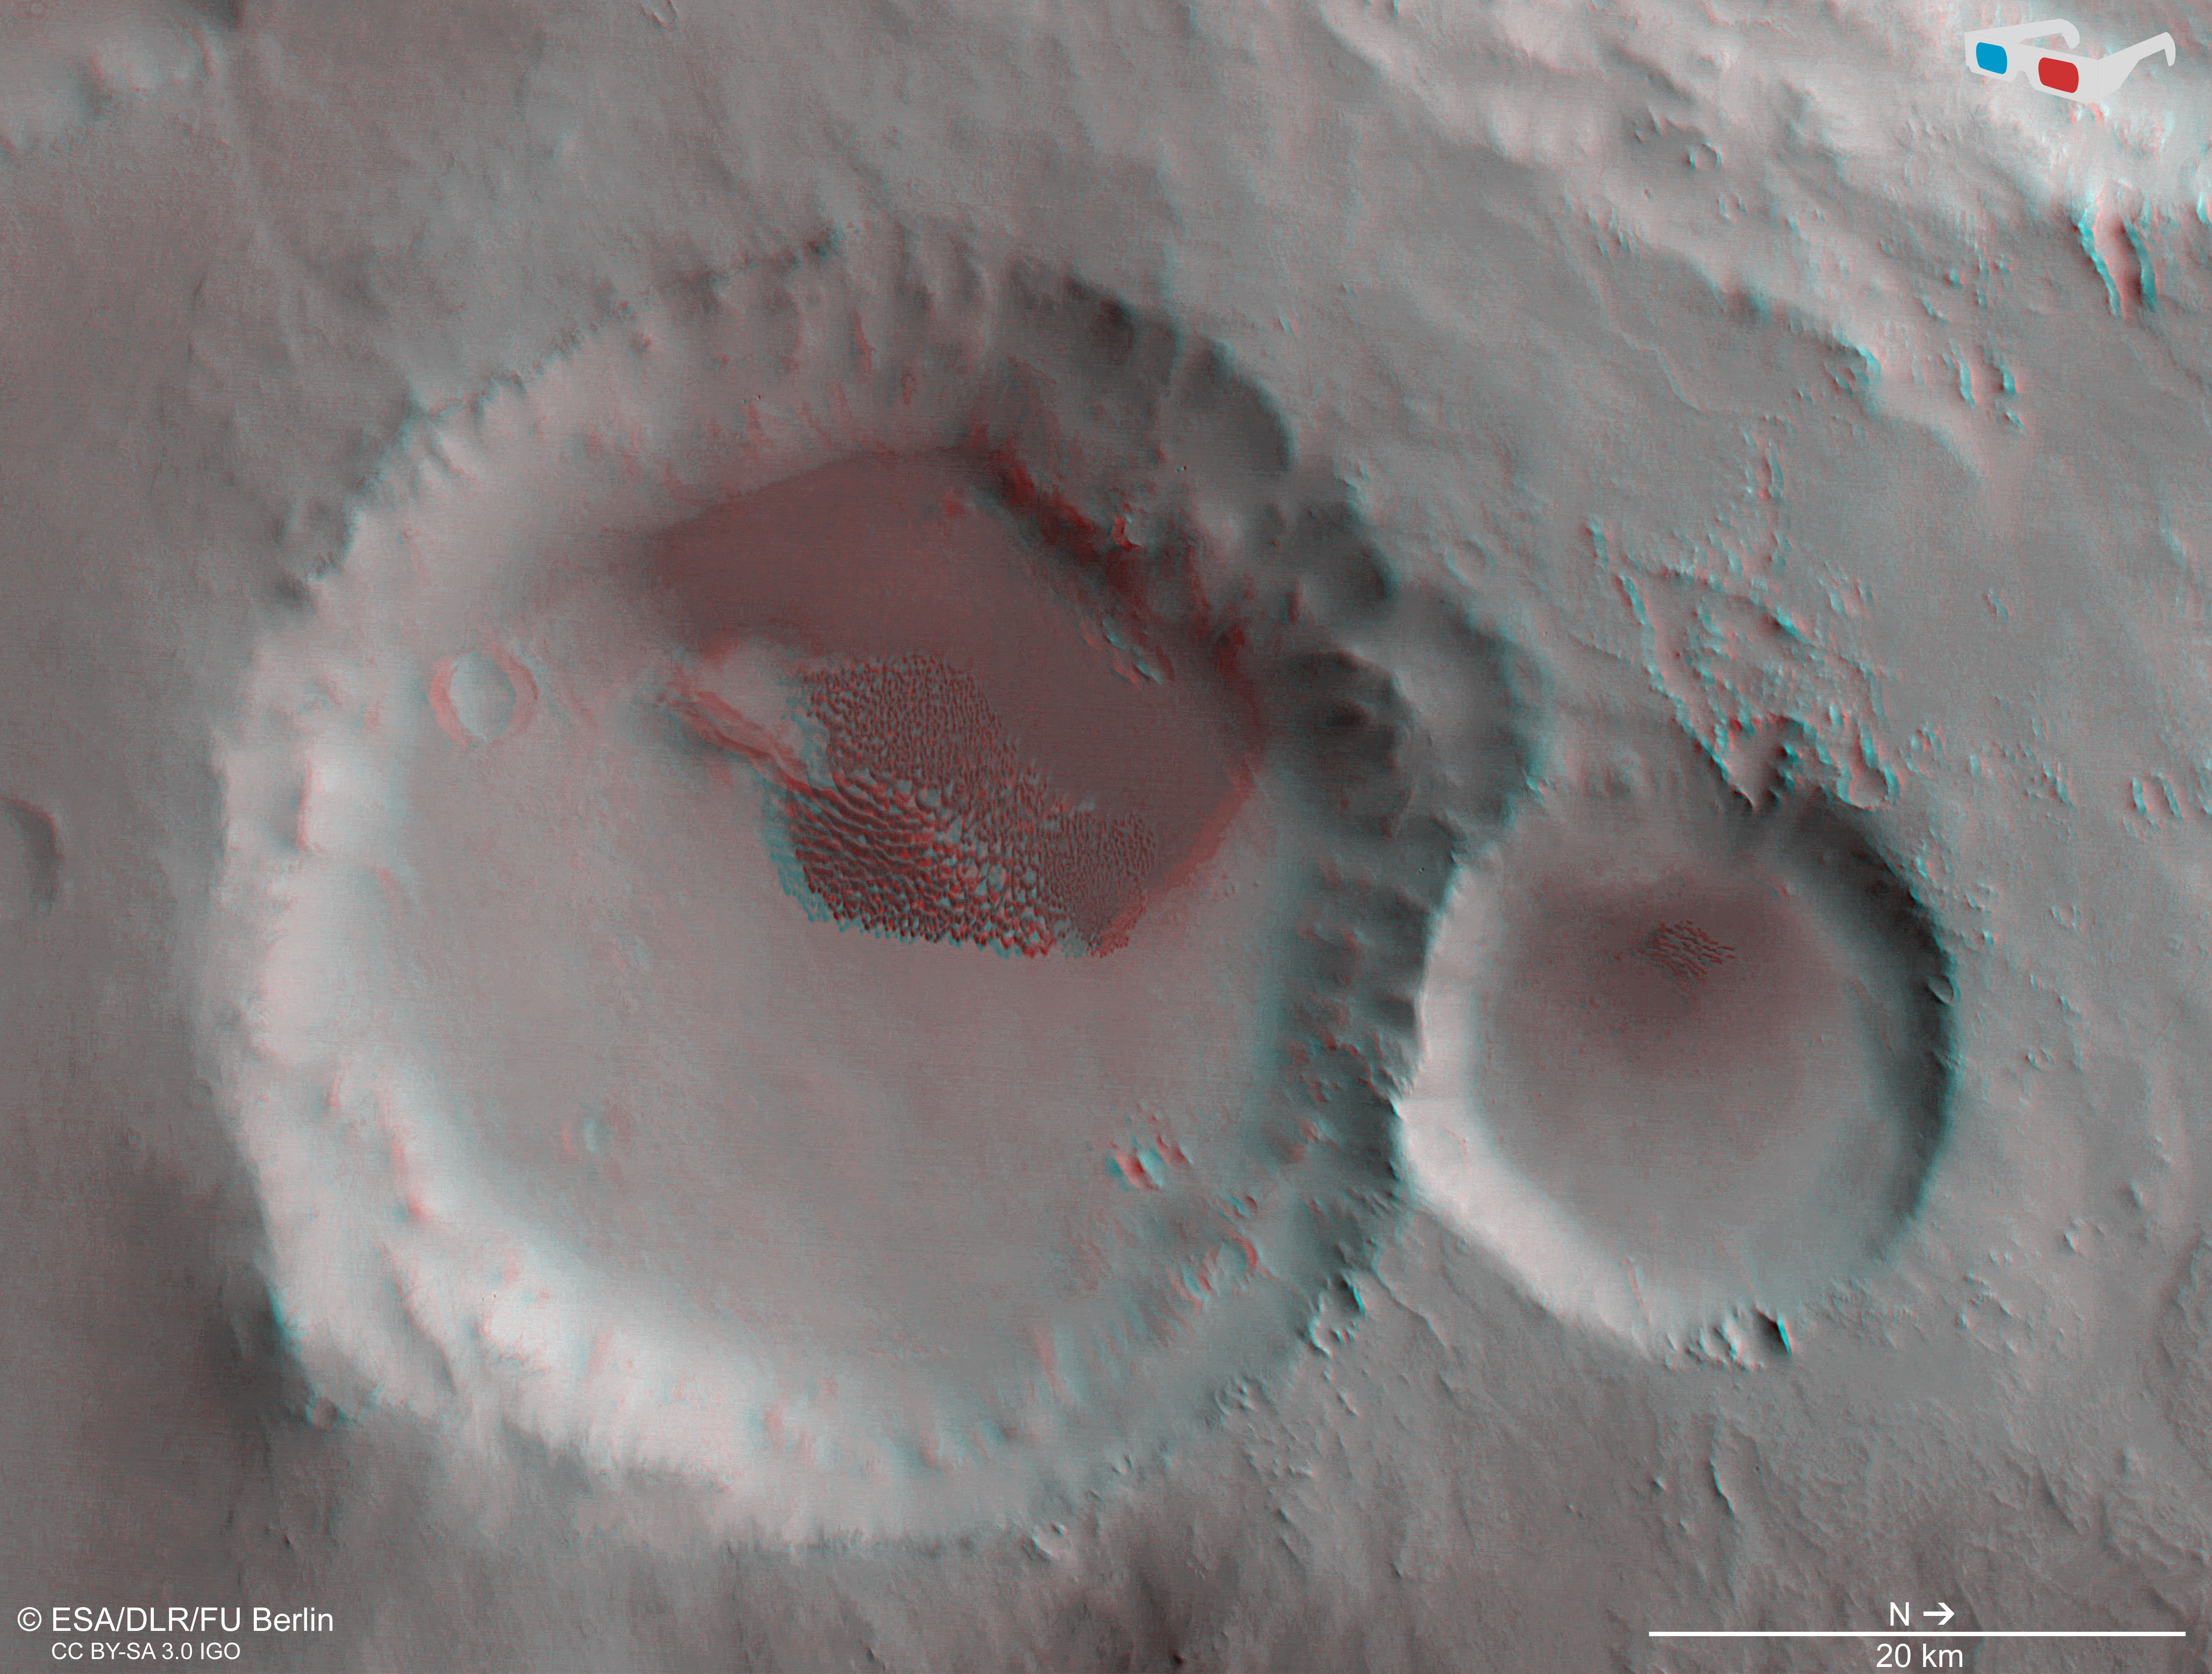 Aonia Terra (Oct 05, 2017) • Planetary Sciences and Remote